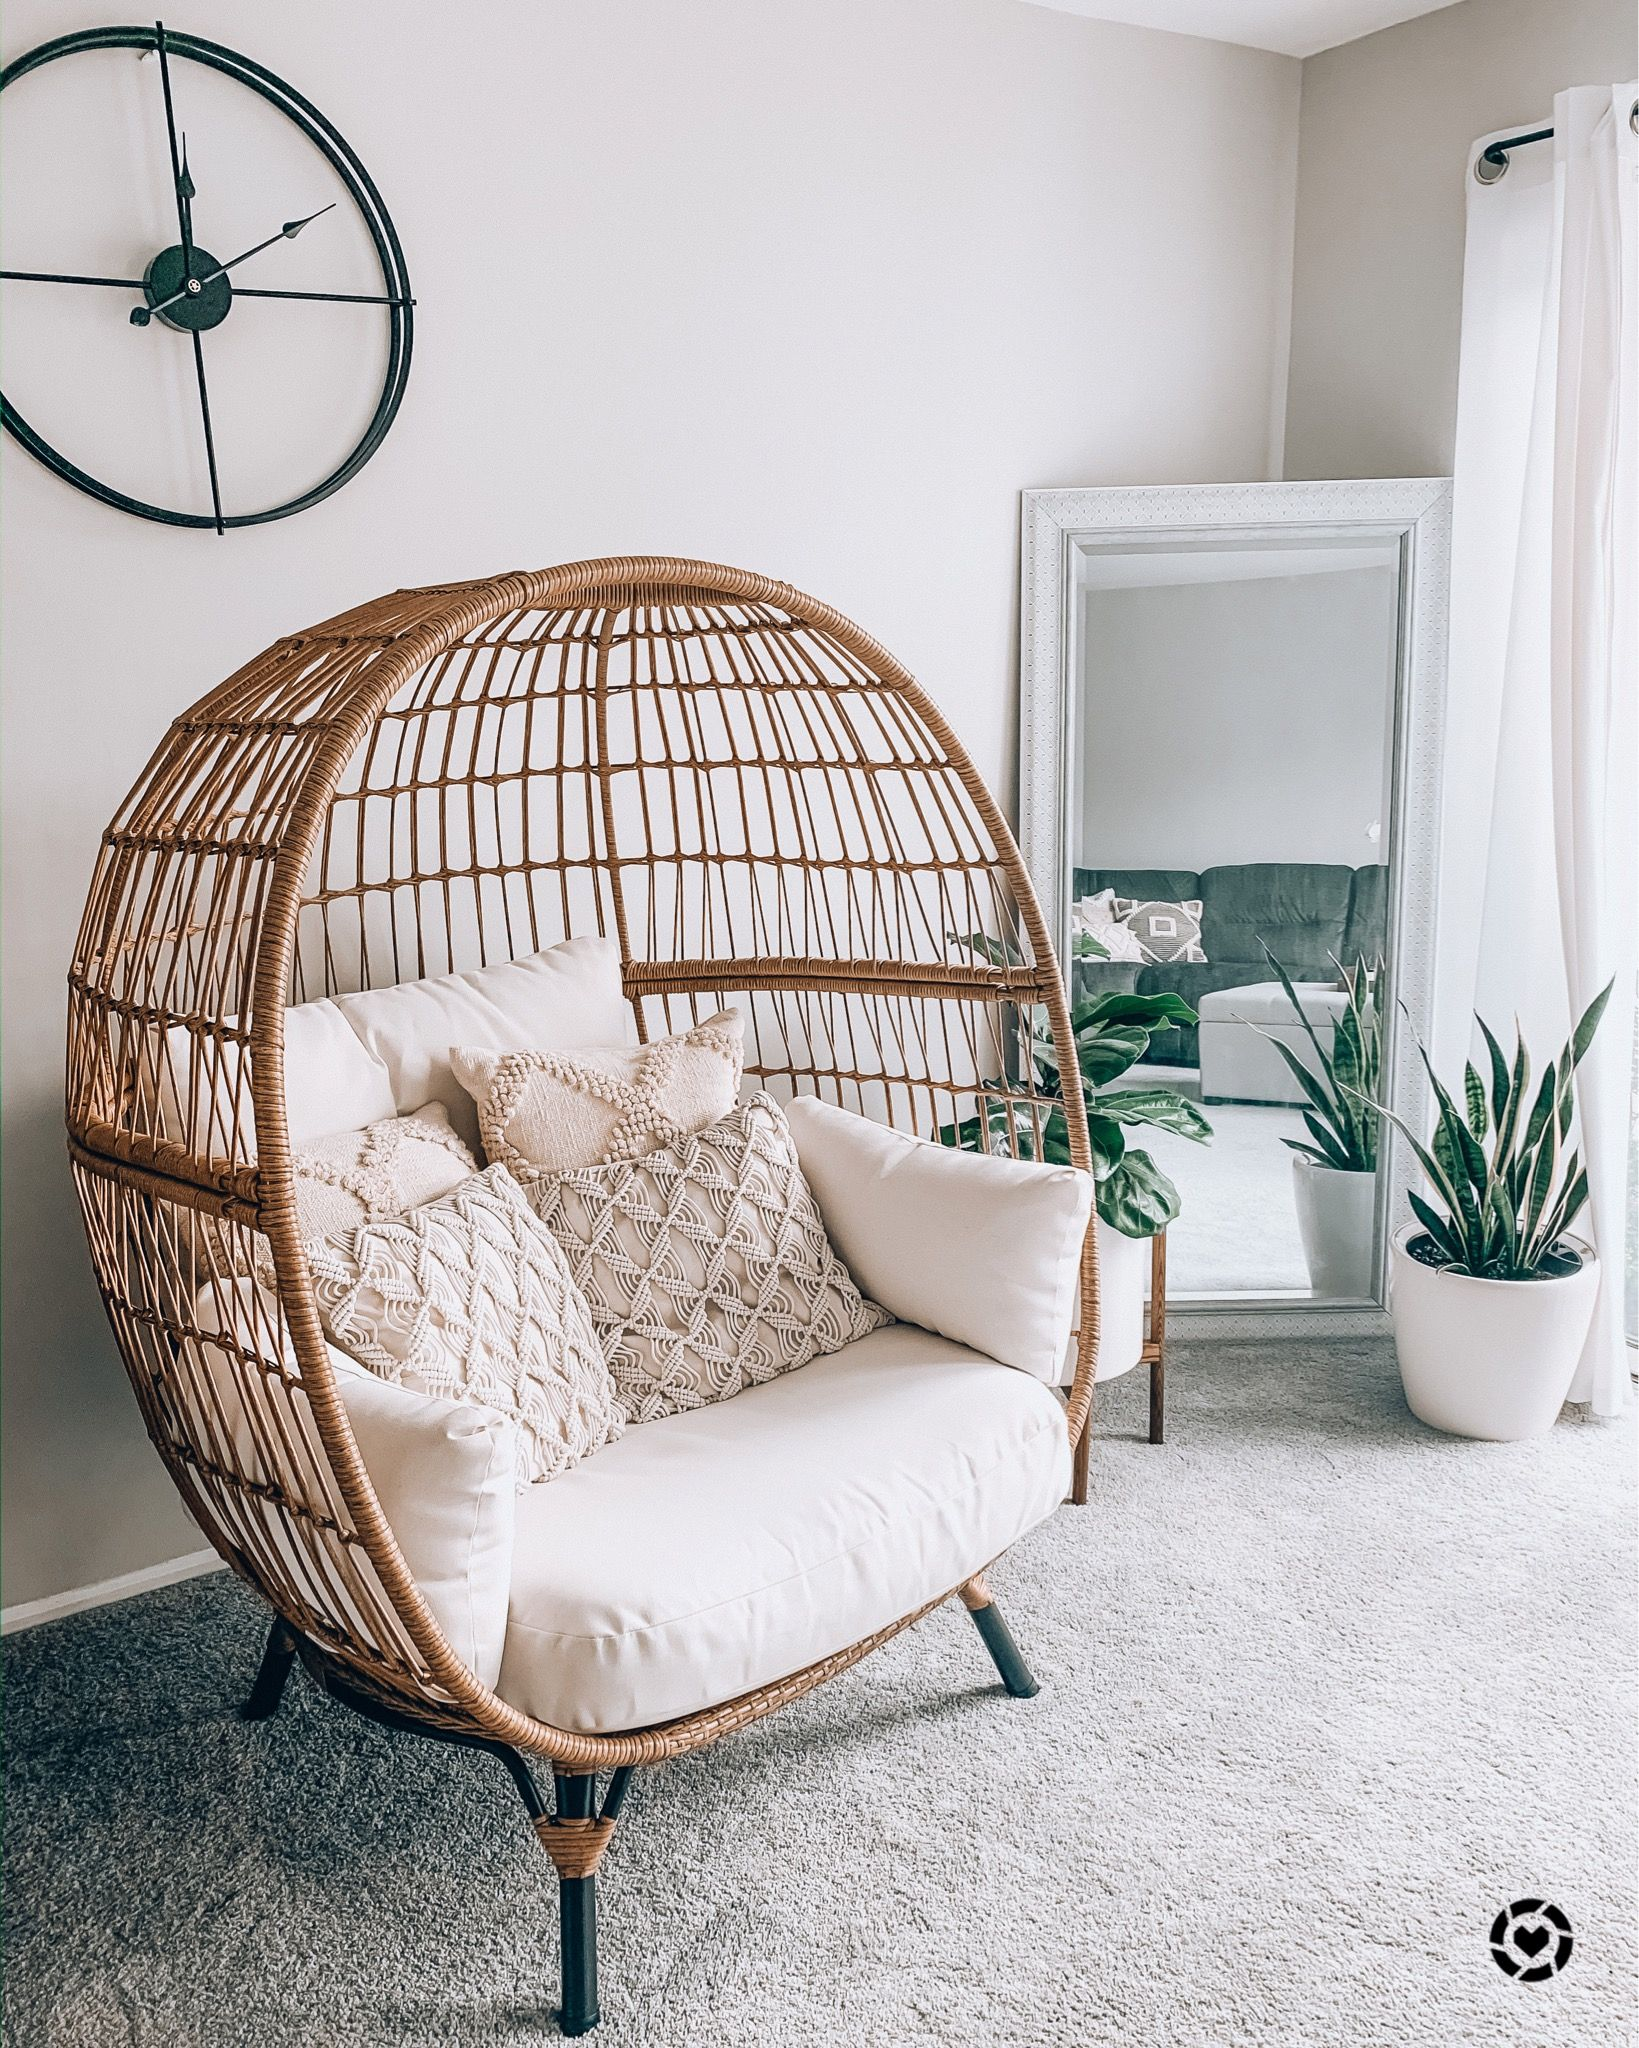 Living Room Egg Chair Liketoknow It In 2020 Hanging Chair Living Room Guest Bedroom Office Modern Boho Living Room